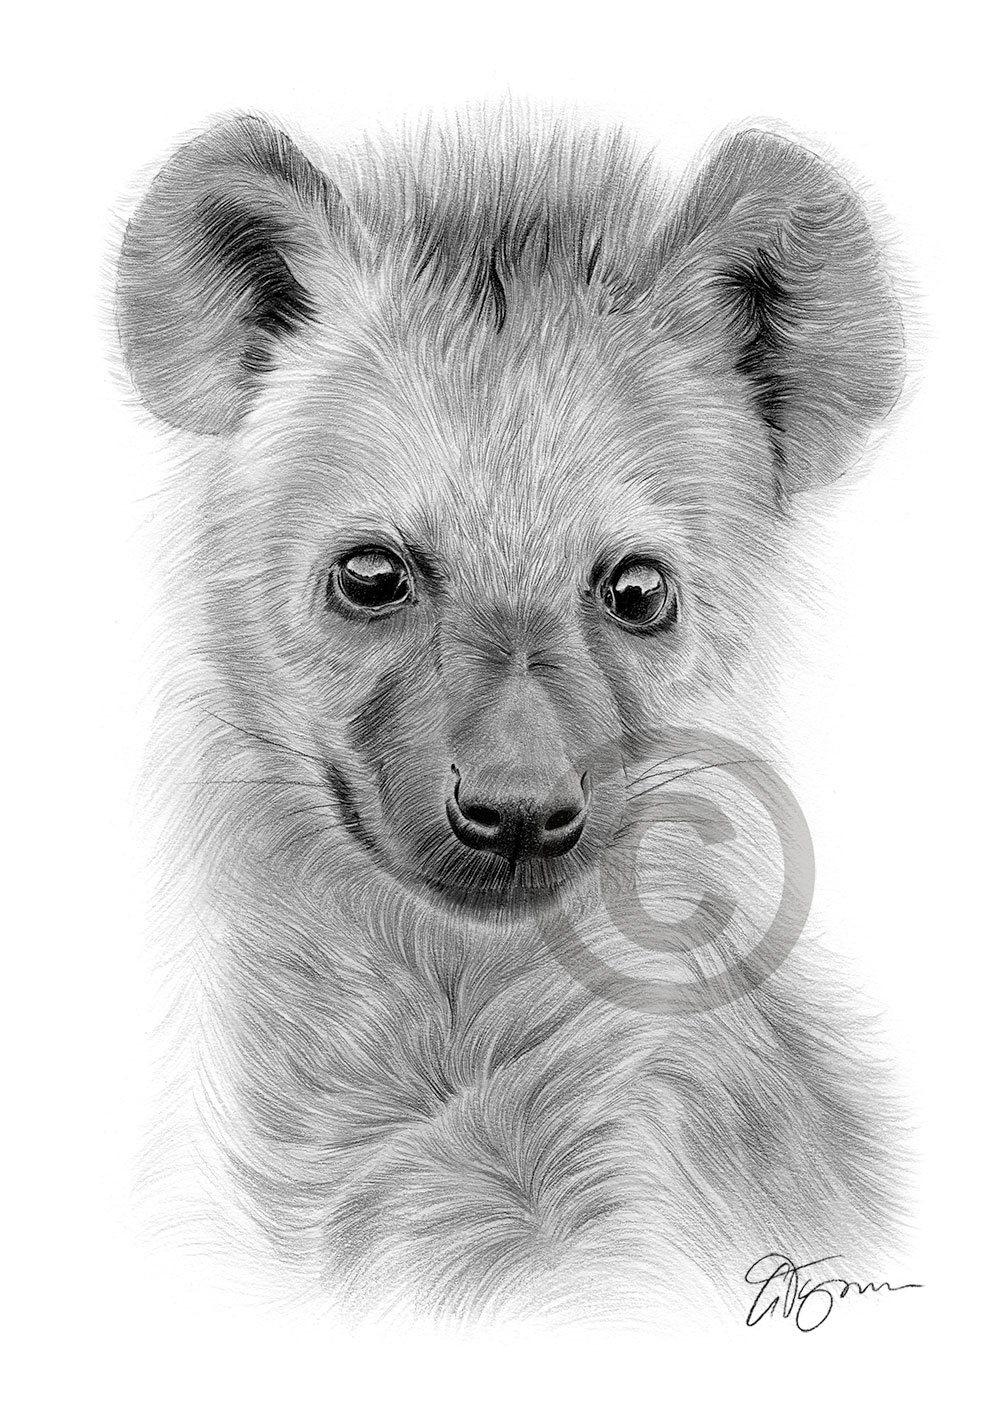 Spotted Hyena Cub pencil drawing by artist Gary Tymon